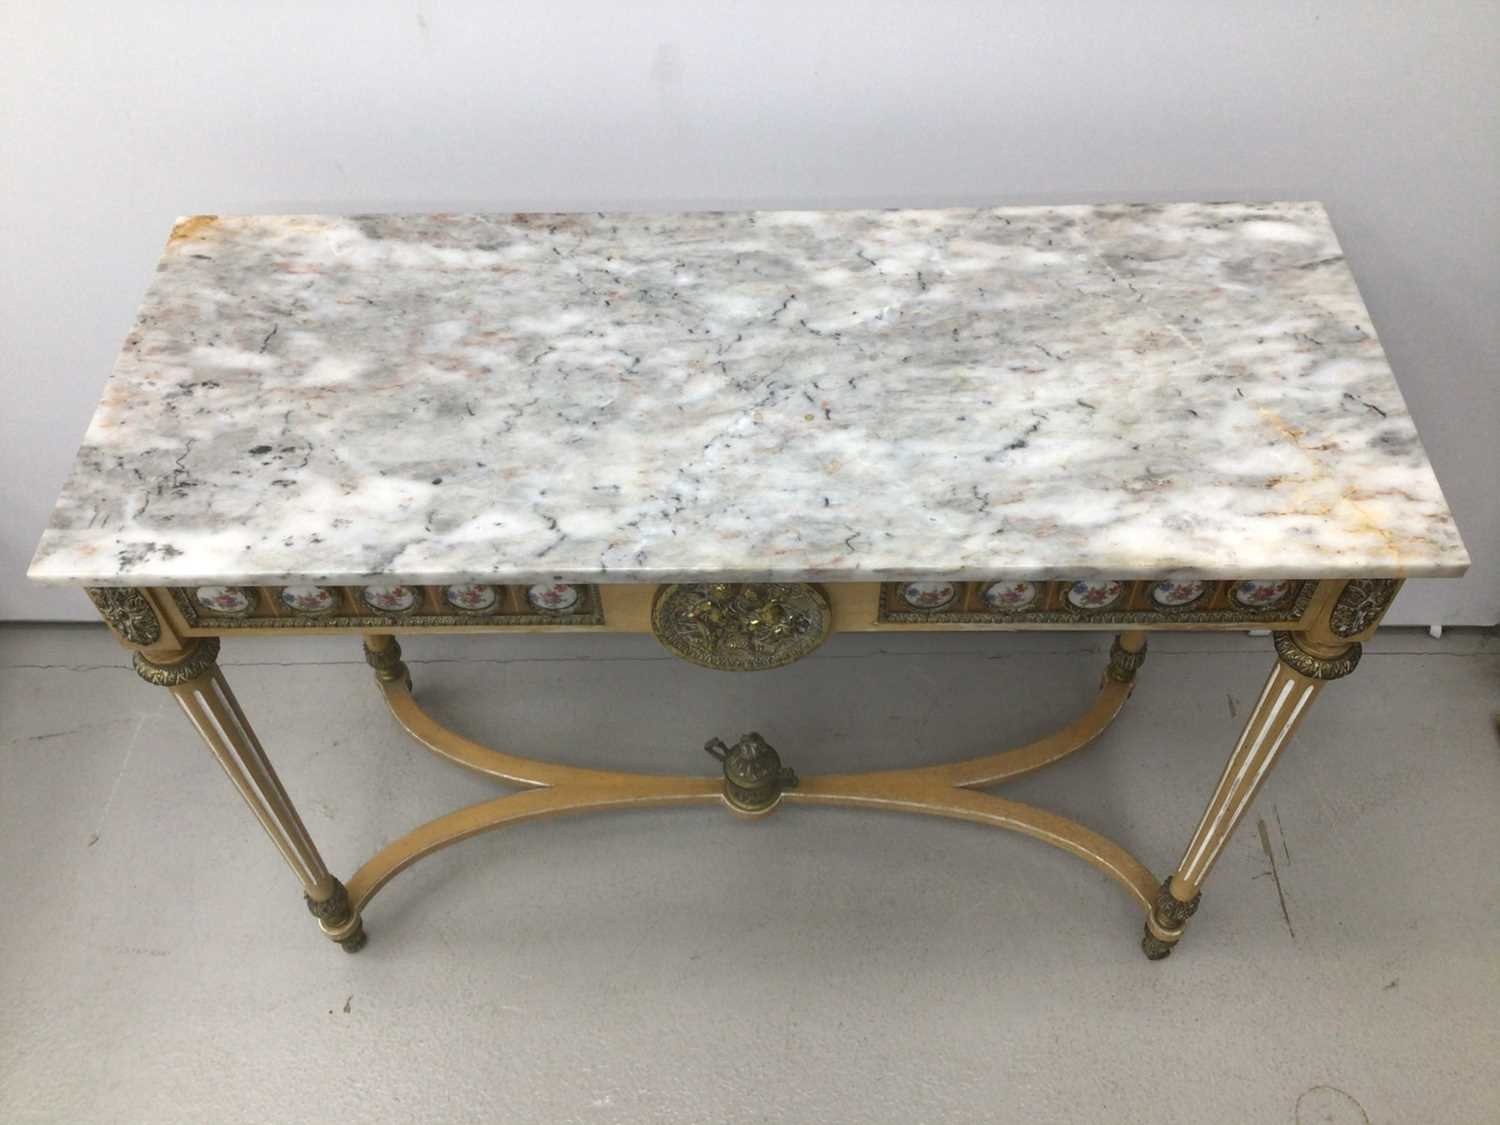 Antique style hall table with marble top, frieze inset with porcelain plaques on fluted turned legs - Image 2 of 7